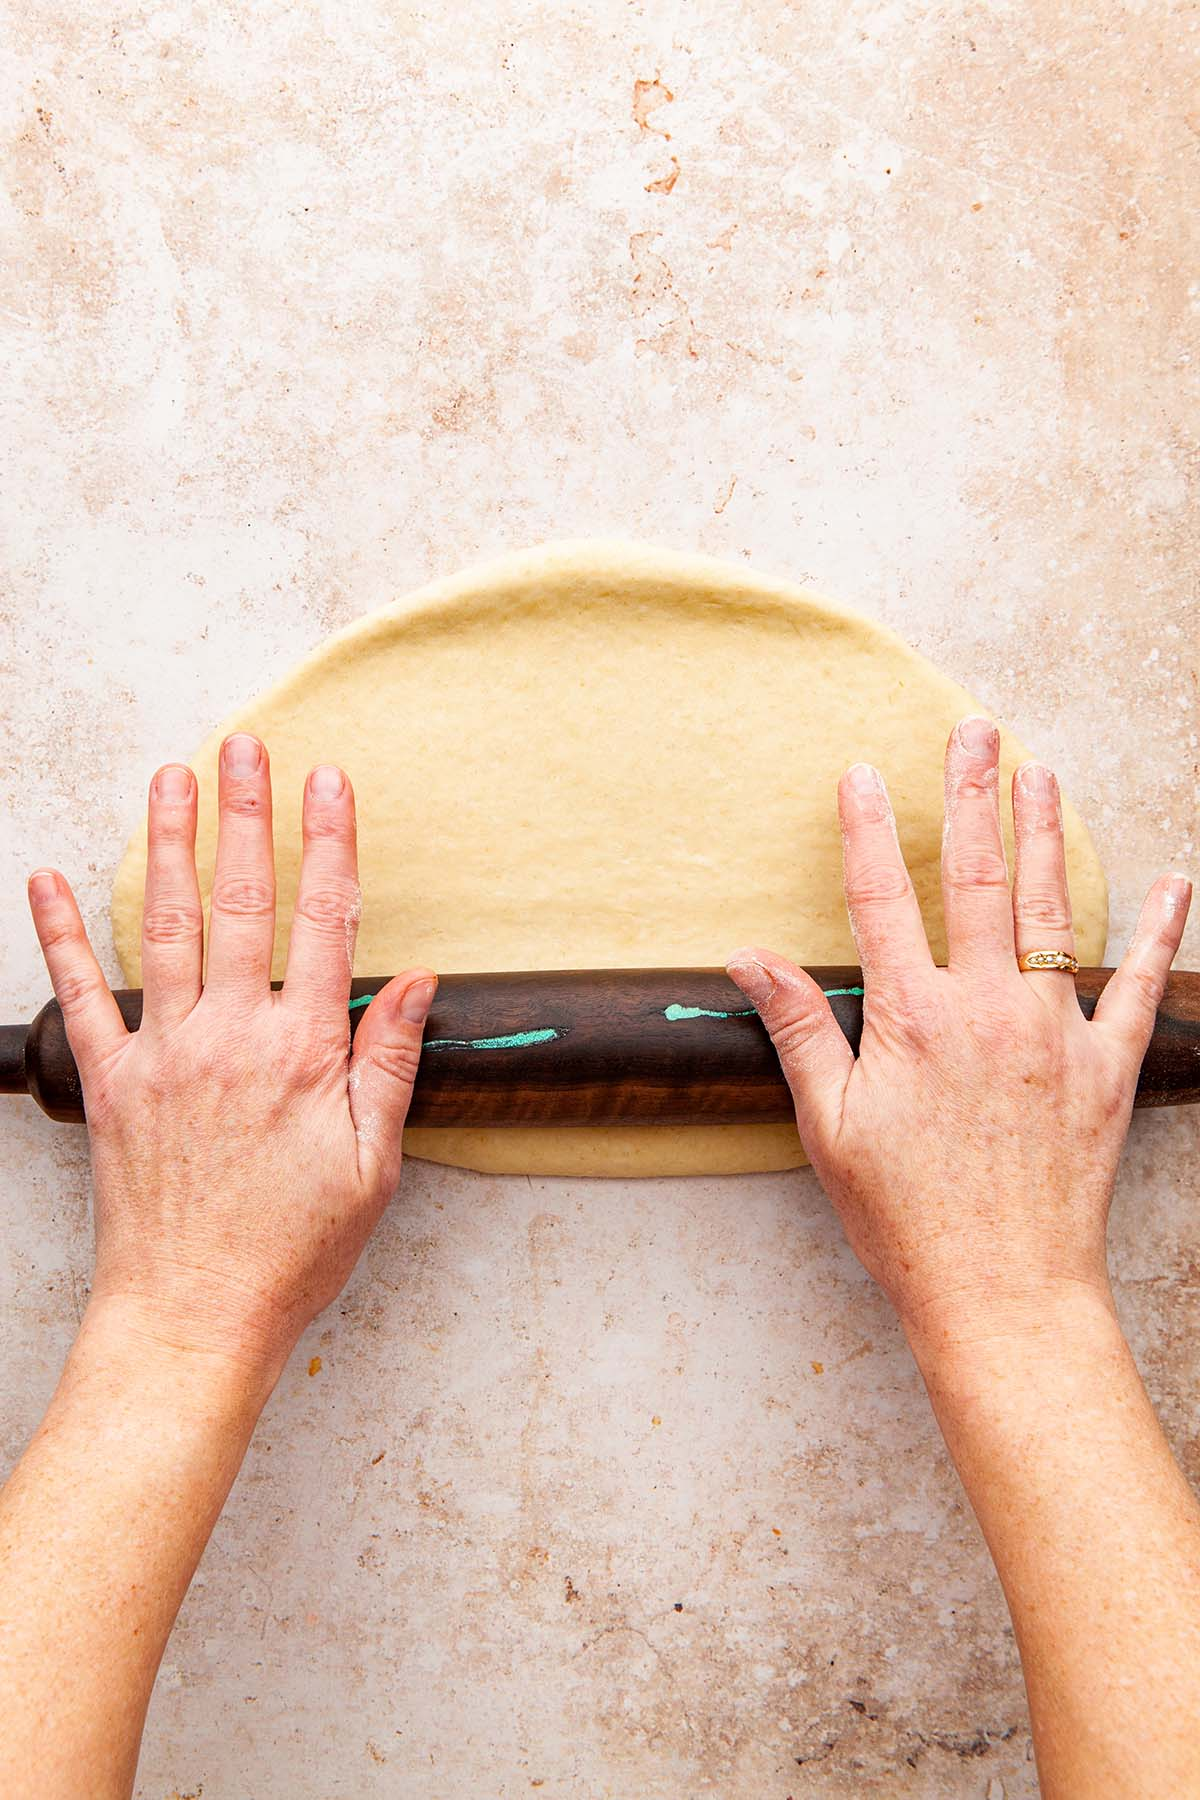 Hands rolling dough with a pin.